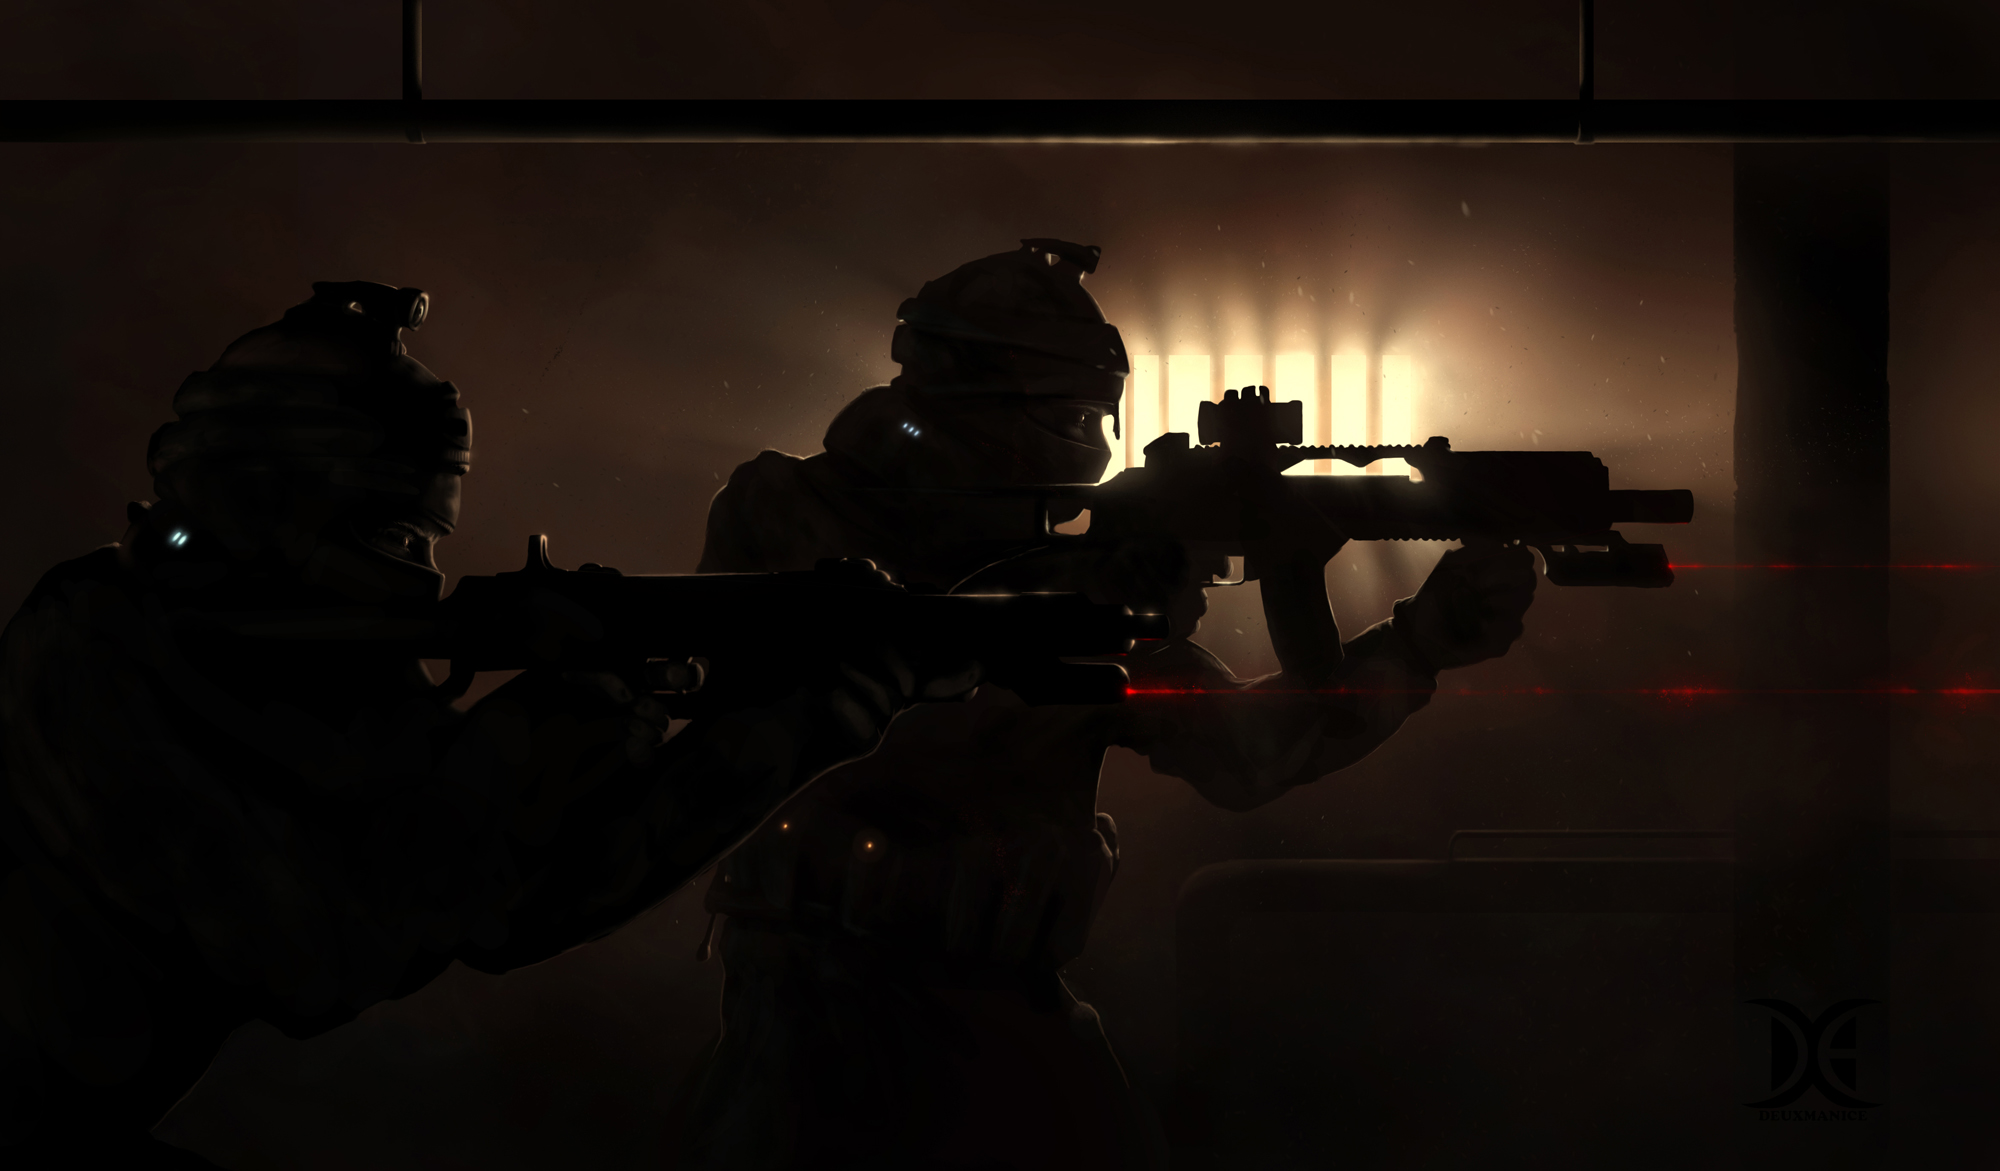 5 Swat Hd Wallpapers Background Images Wallpaper Abyss